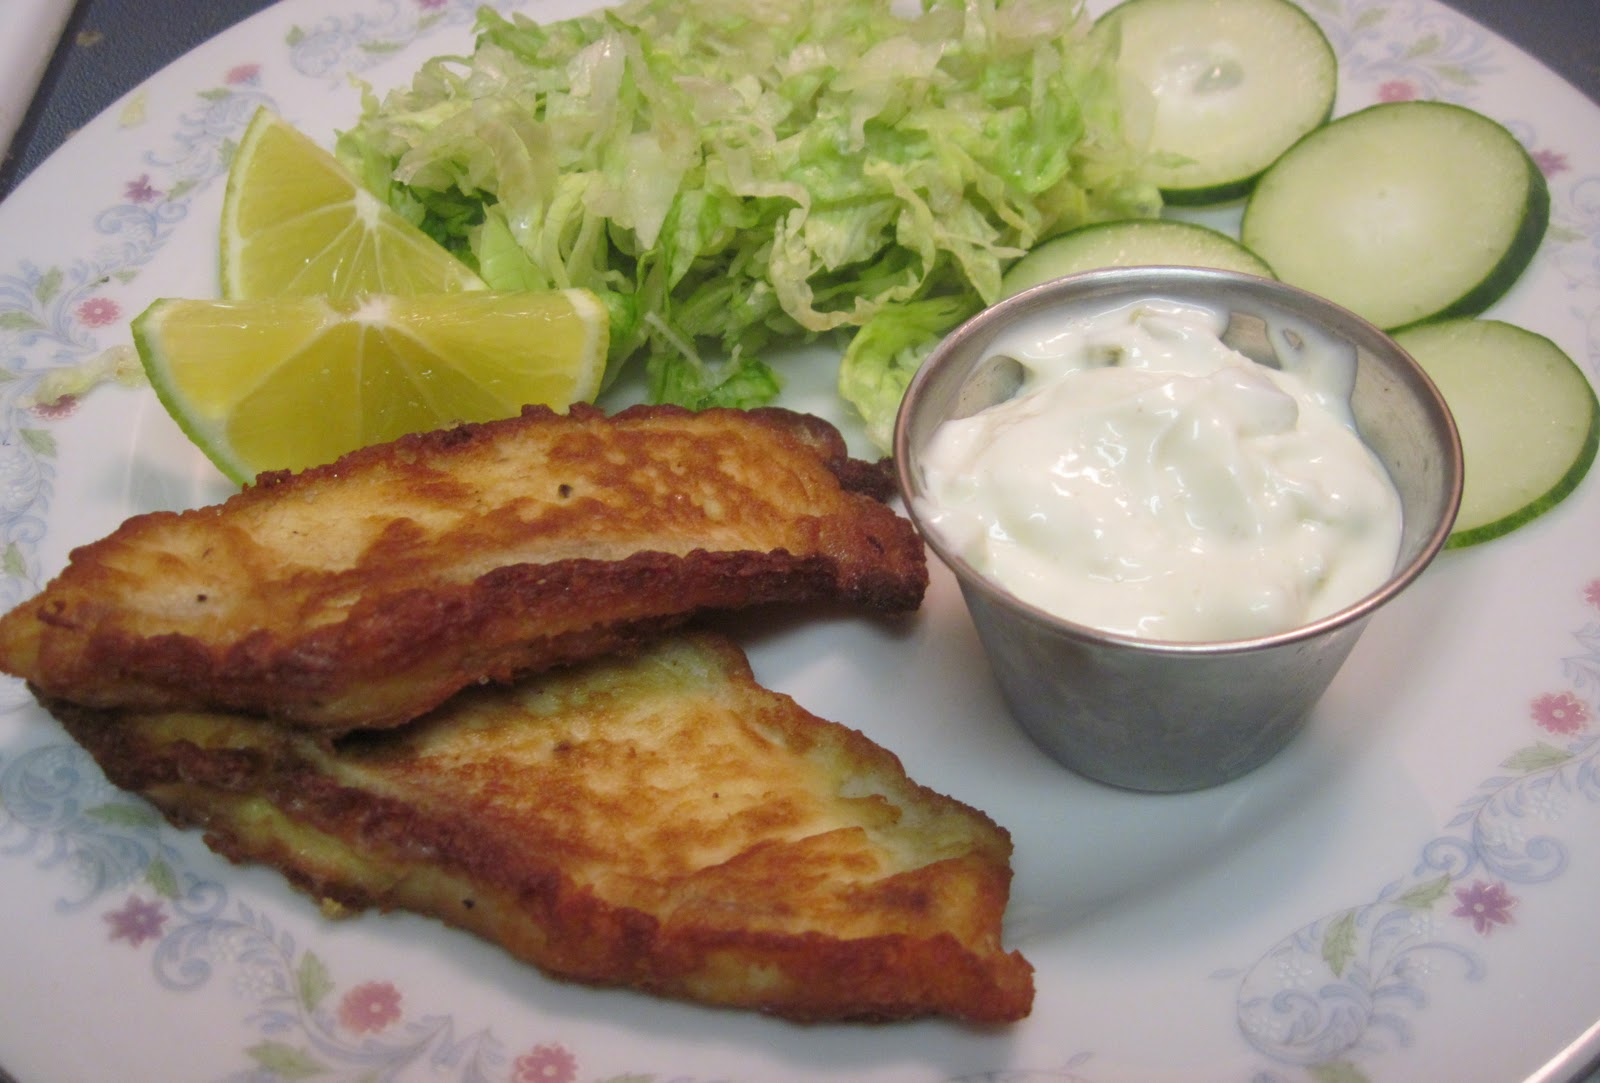 Luscious low carb low carb batter fried fish for Deep fry fish batter